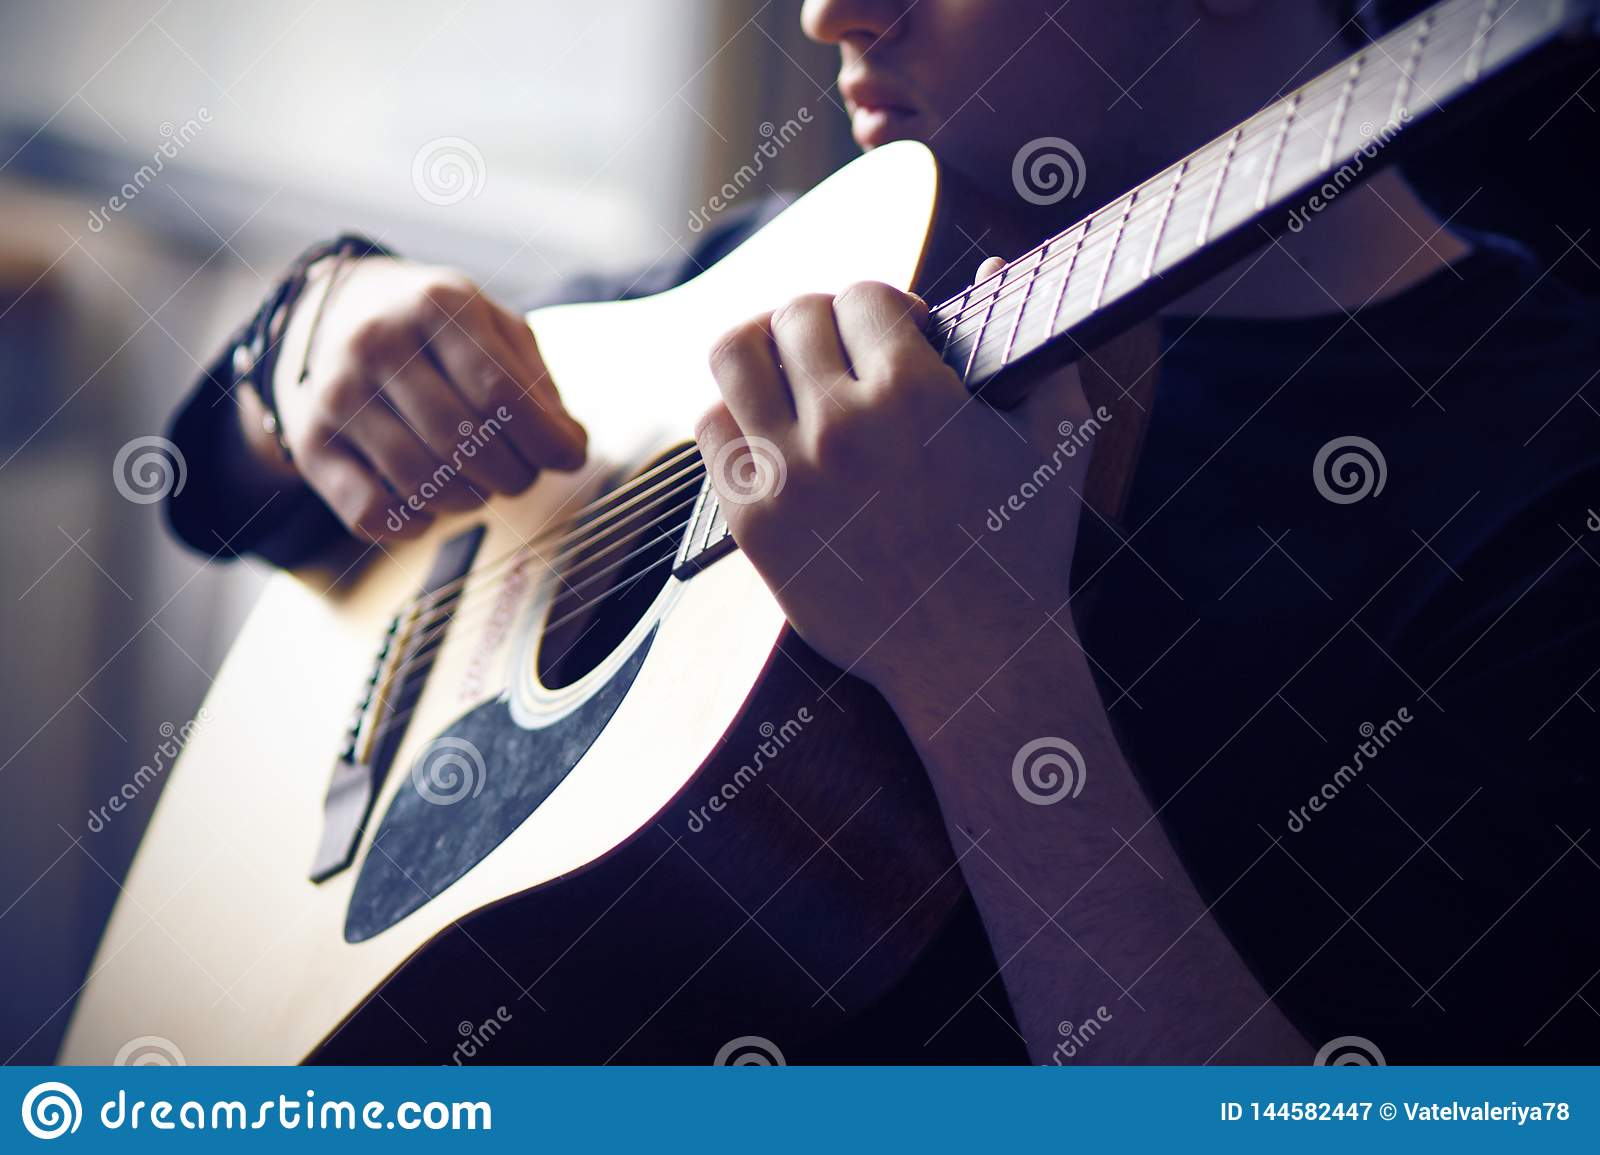 A musician plays his acoustic guitar, holding the fretboard at the base